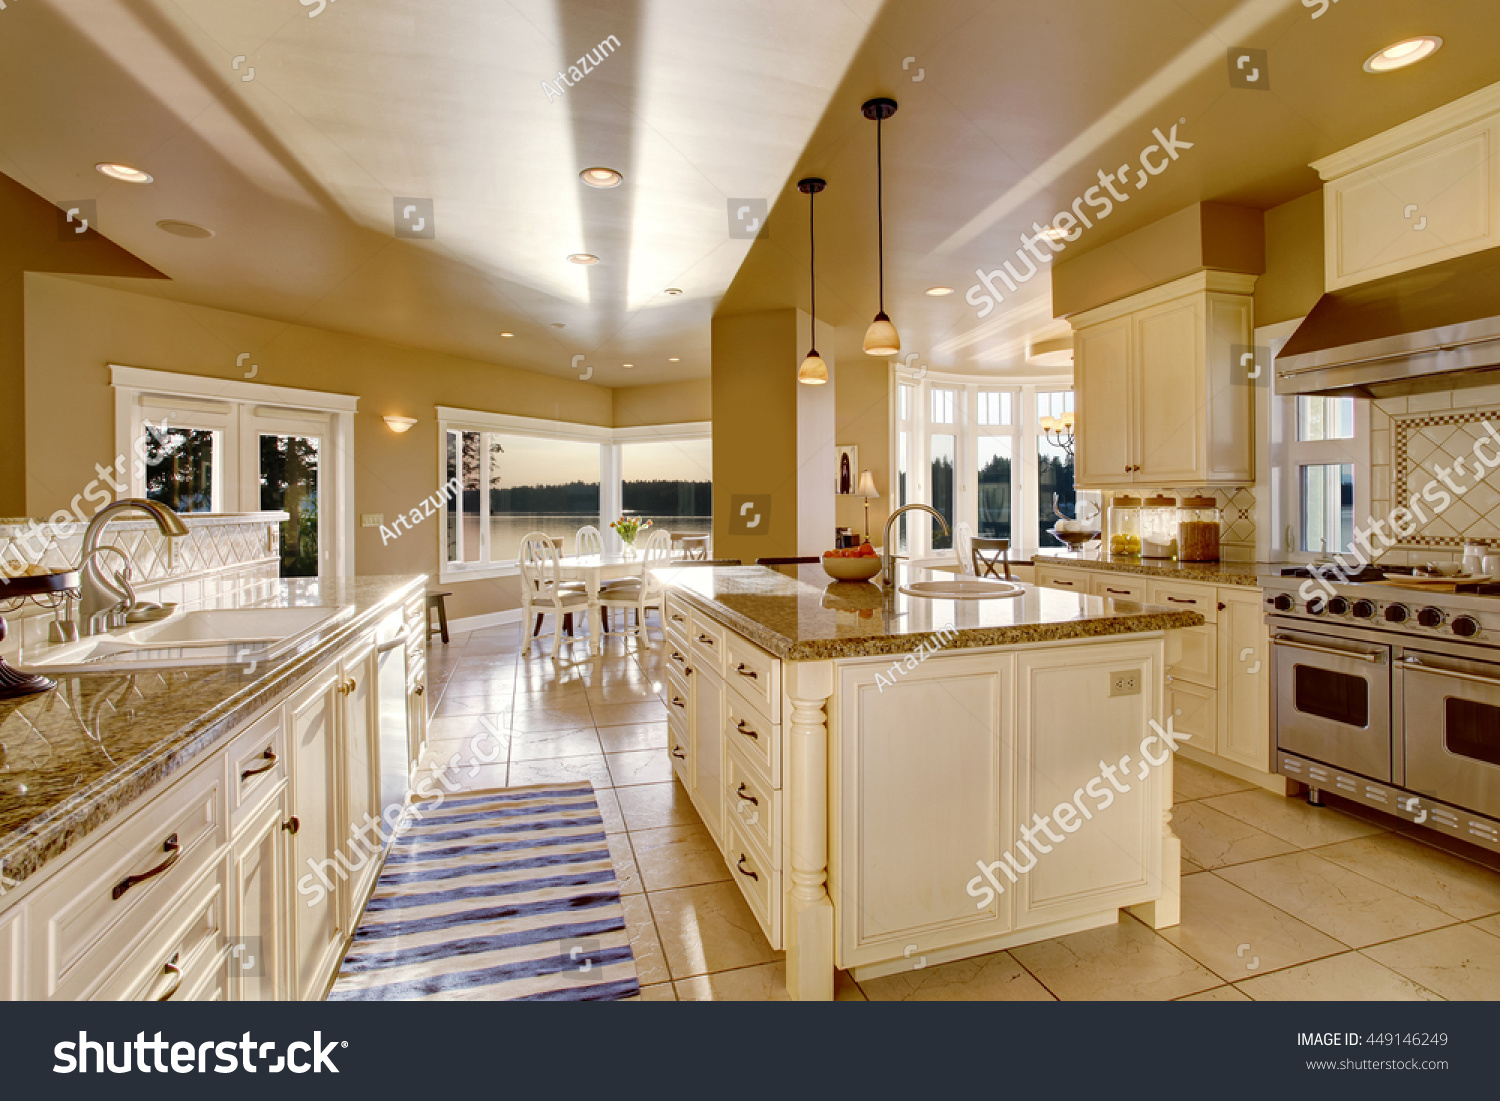 Large luxury kitchen room beige colors stock photo 449146249 shutterstock - Luxury kitchen room ...